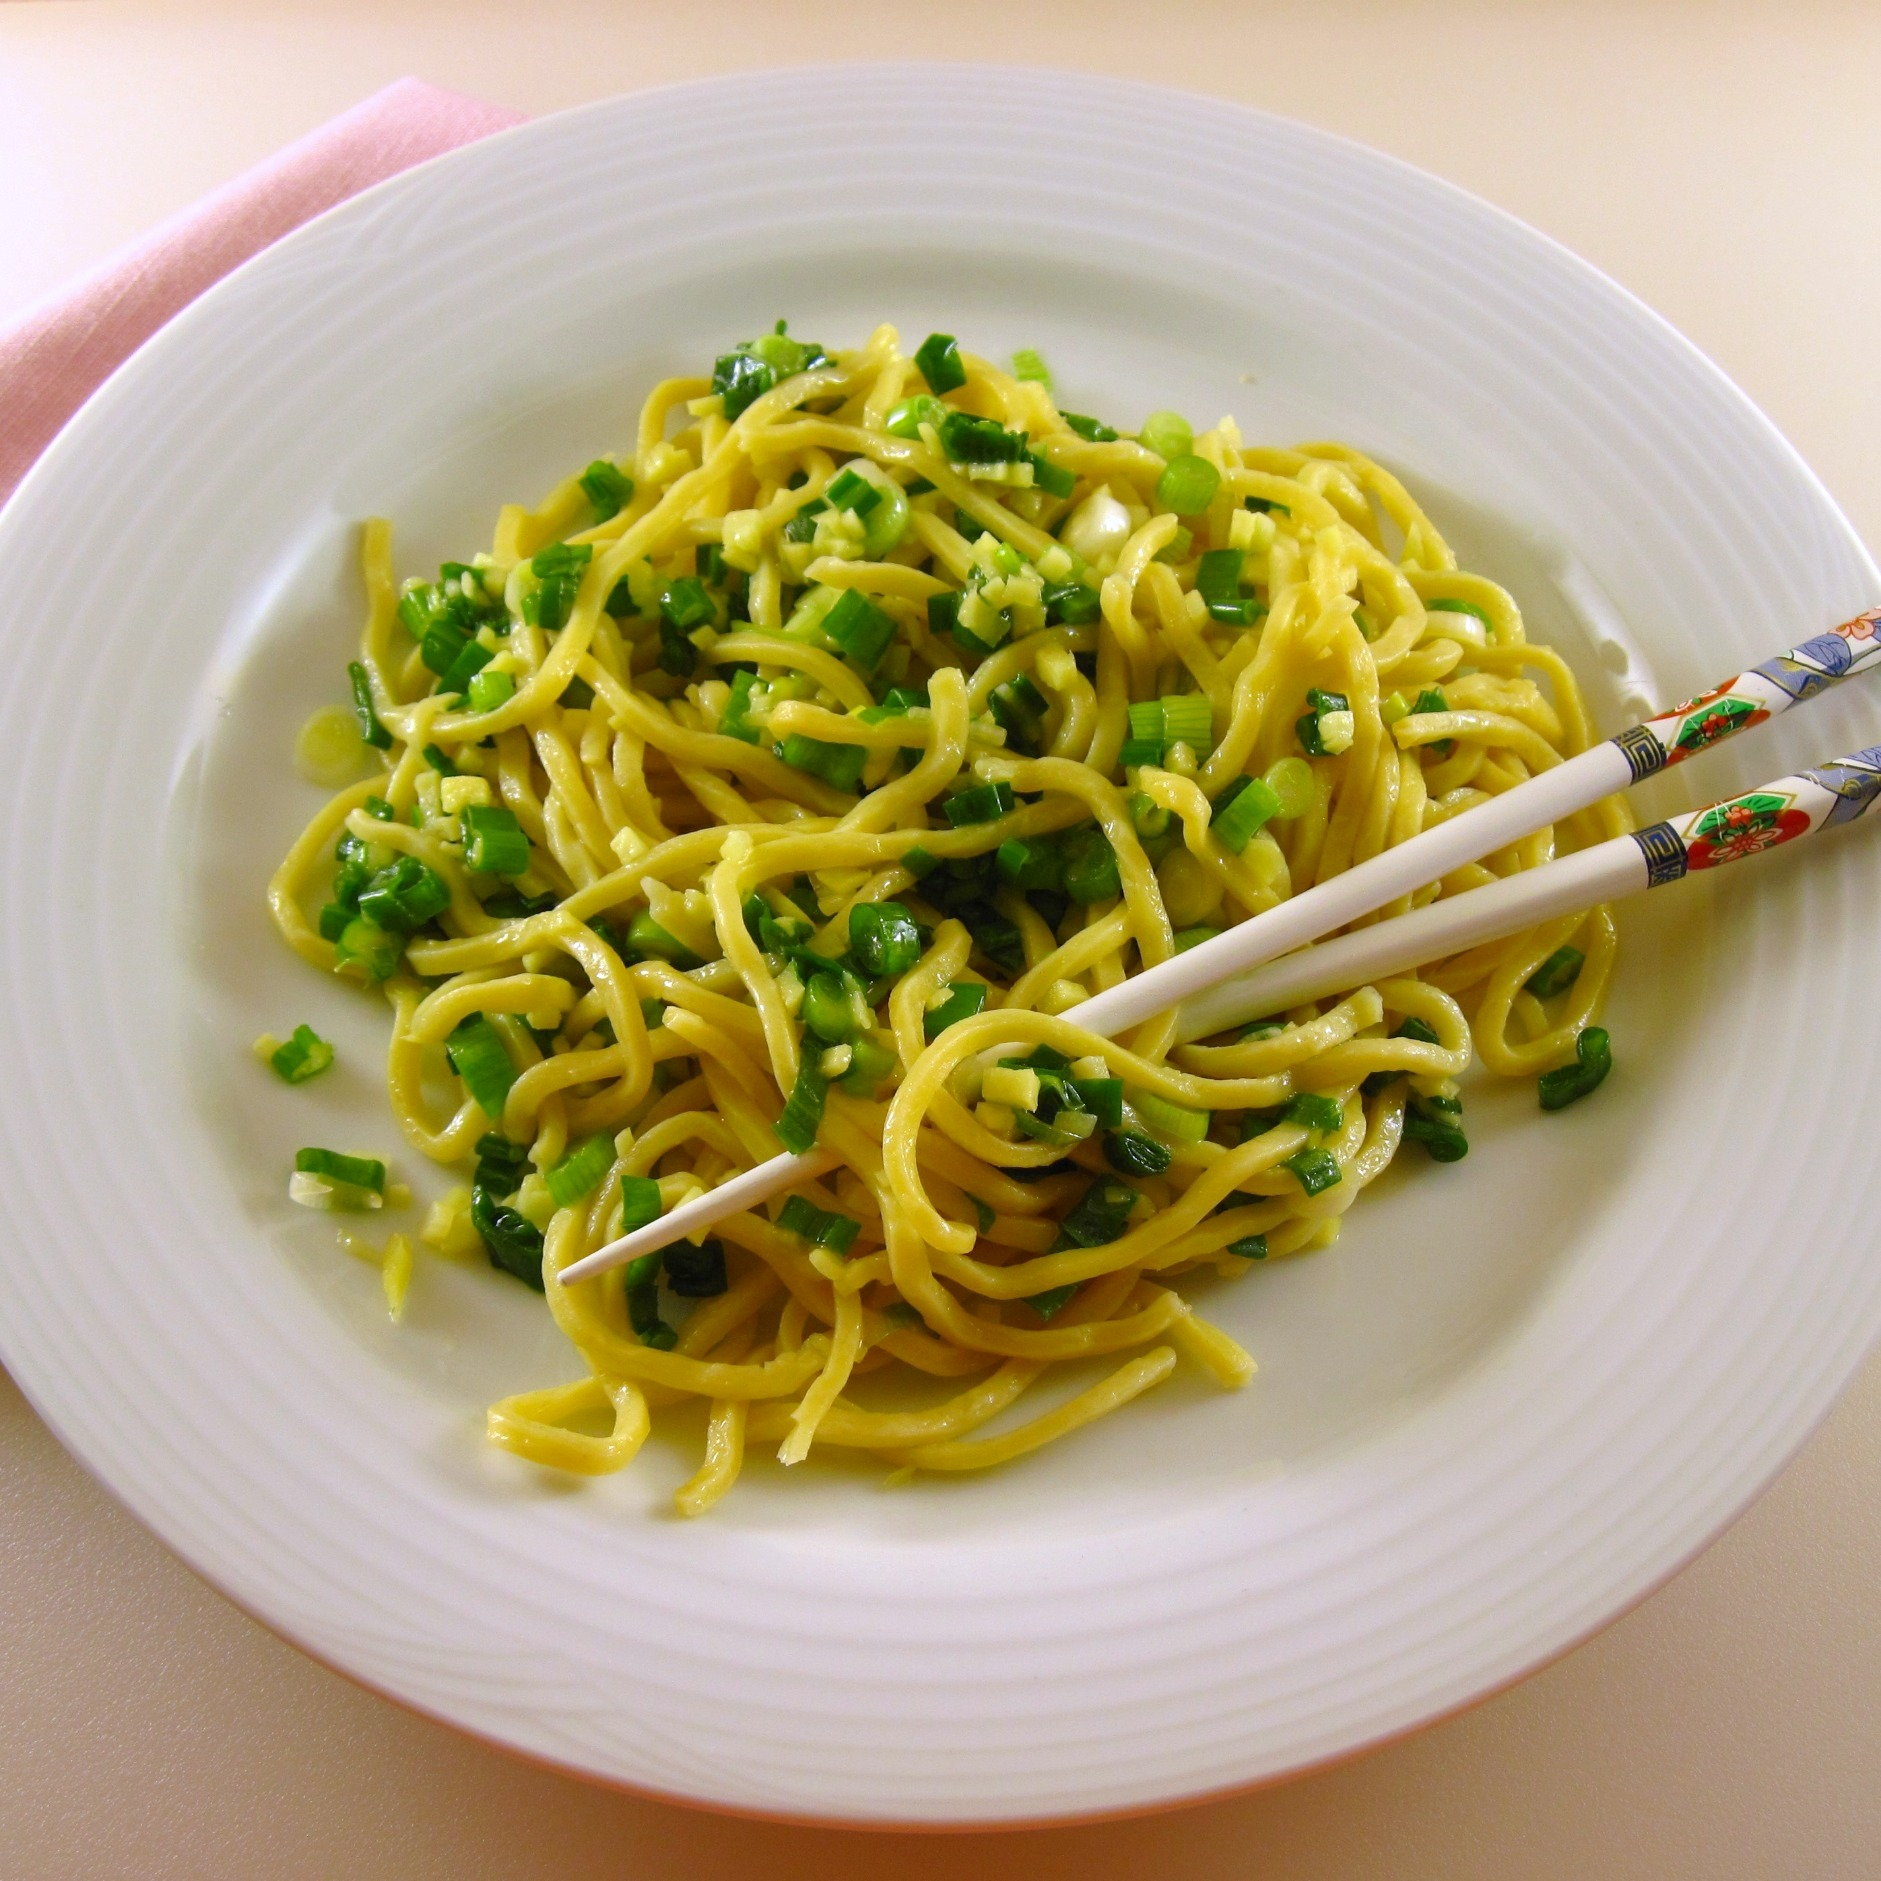 Ginger scallion sauce with noodles 2